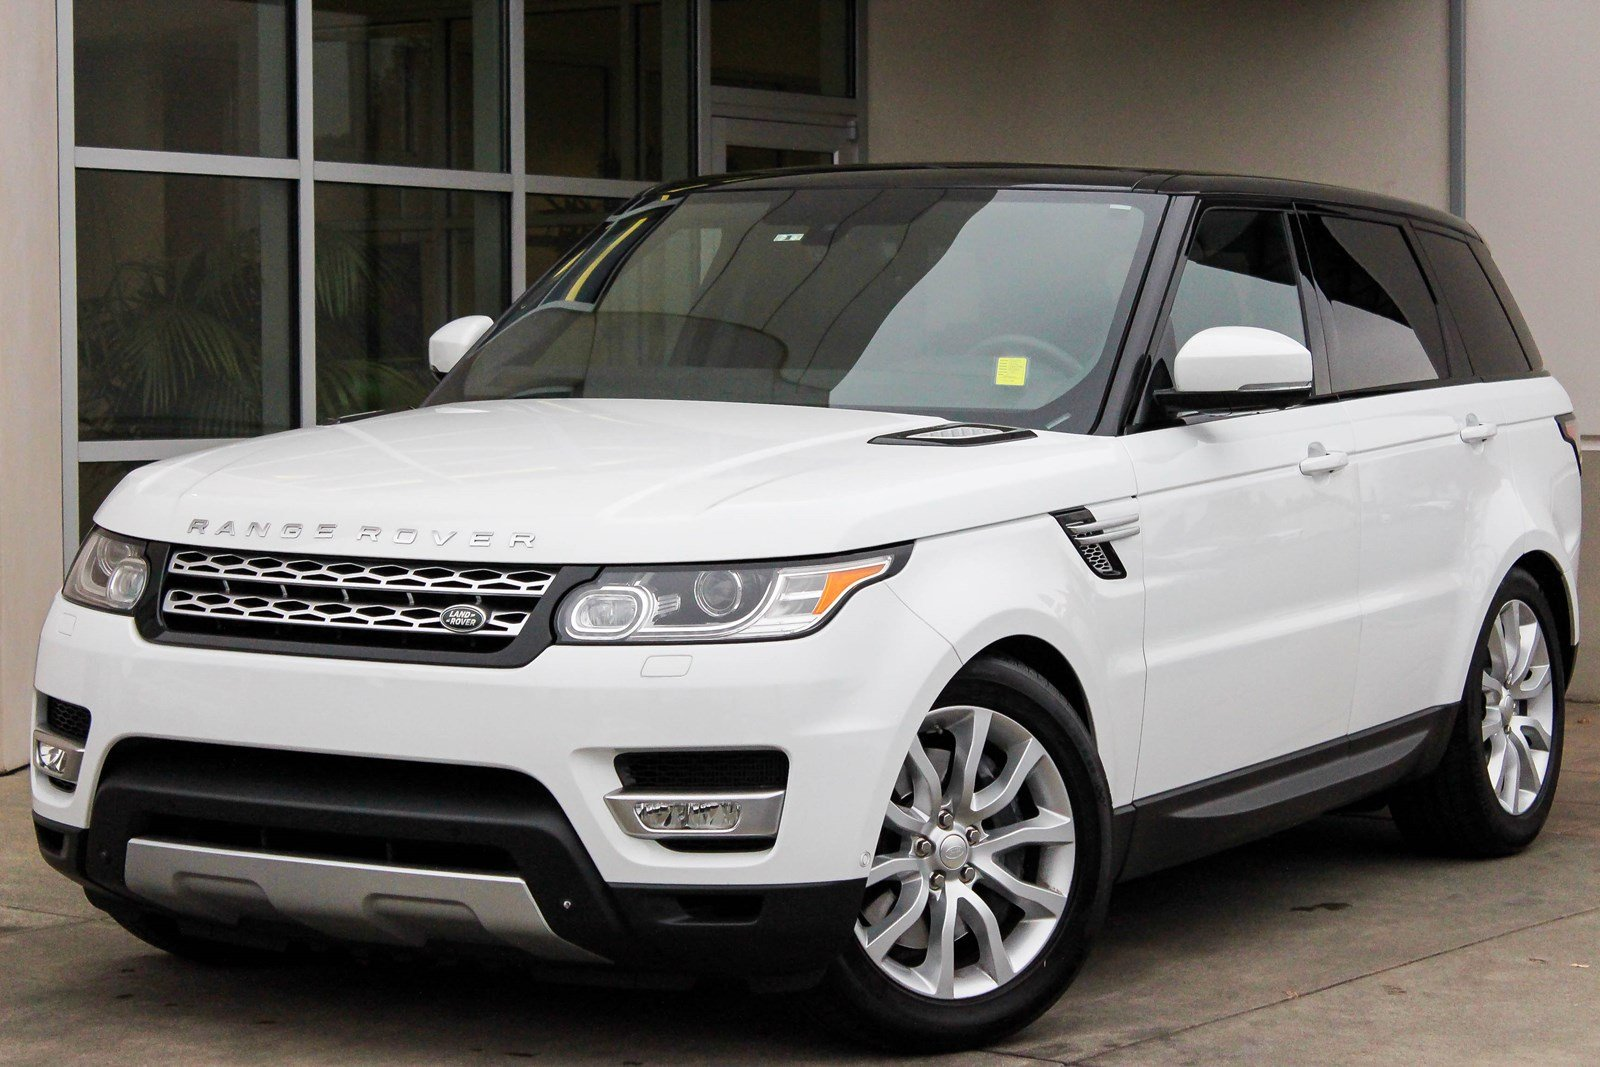 Certified Pre-Owned 2014 Land Rover Range Rover Sport Supercharged